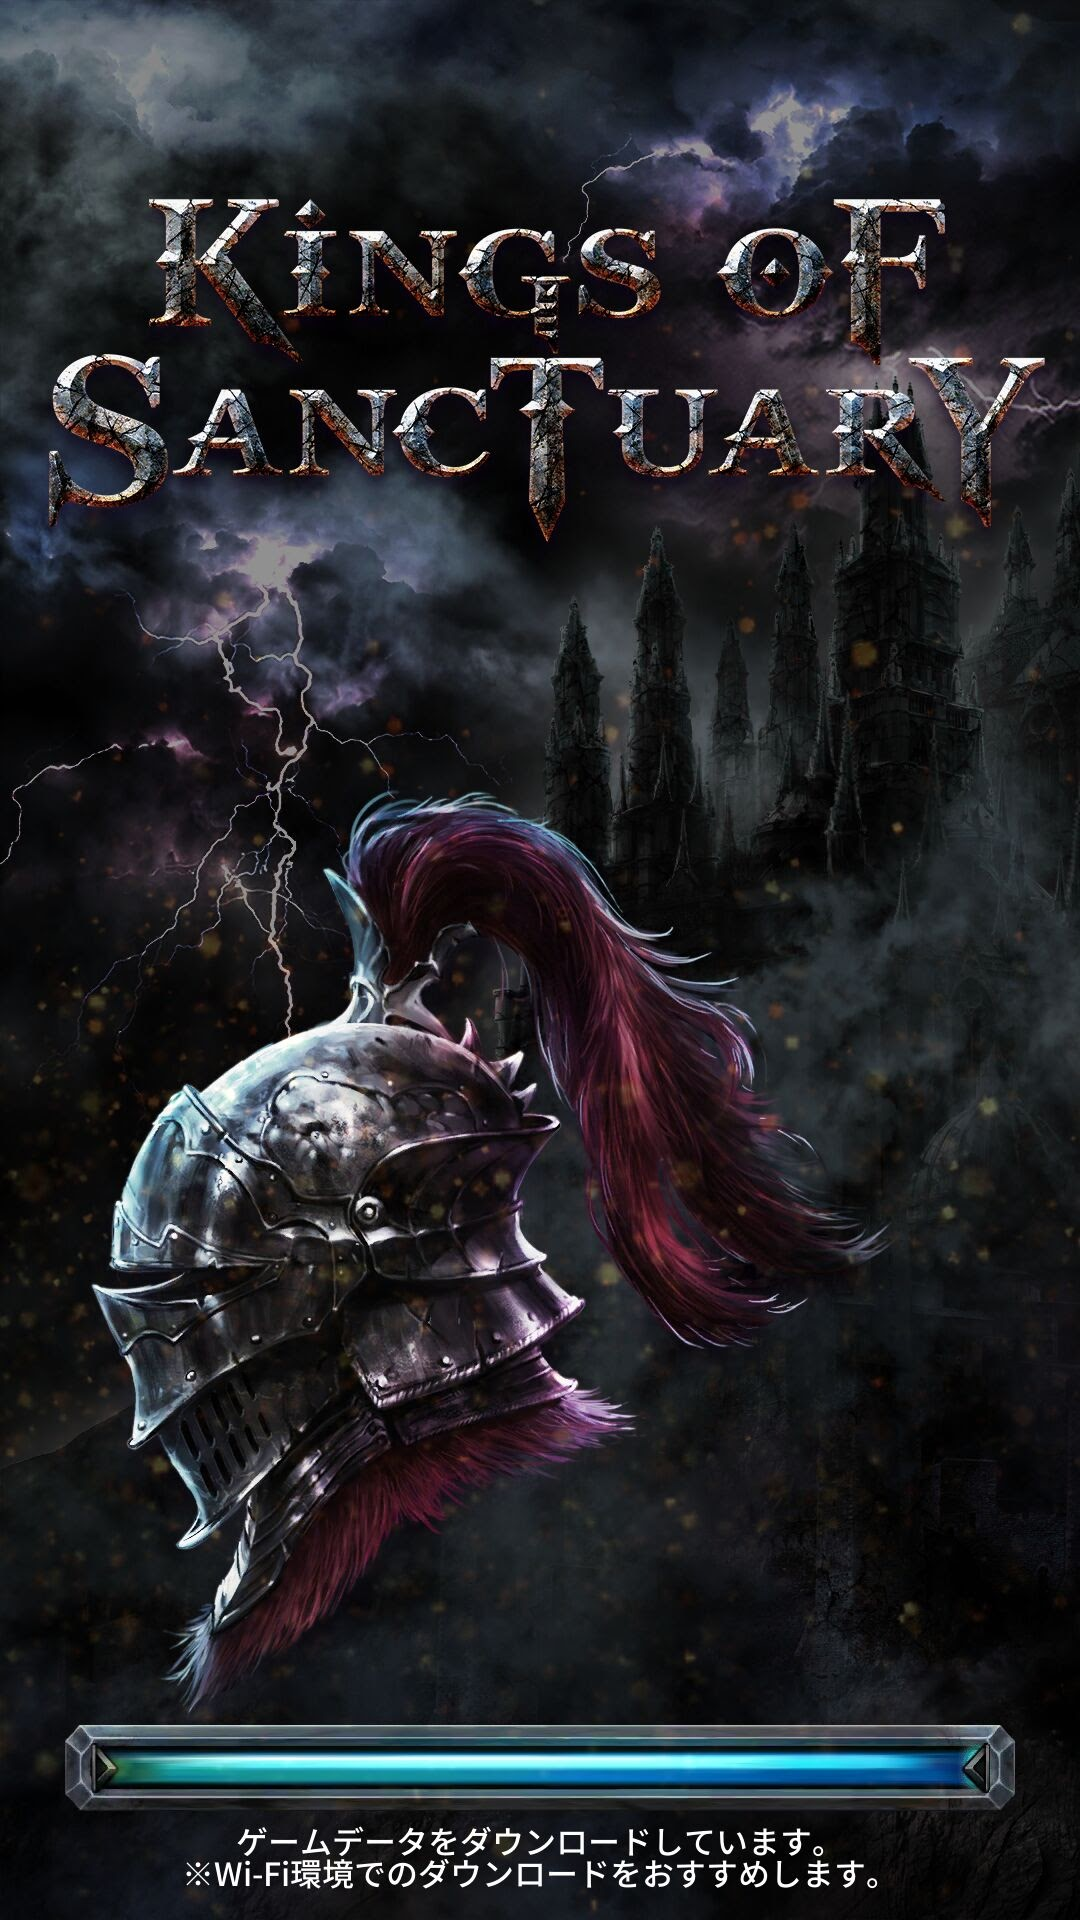 androidアプリ KOS - Kings of Sanctuary攻略スクリーンショット1